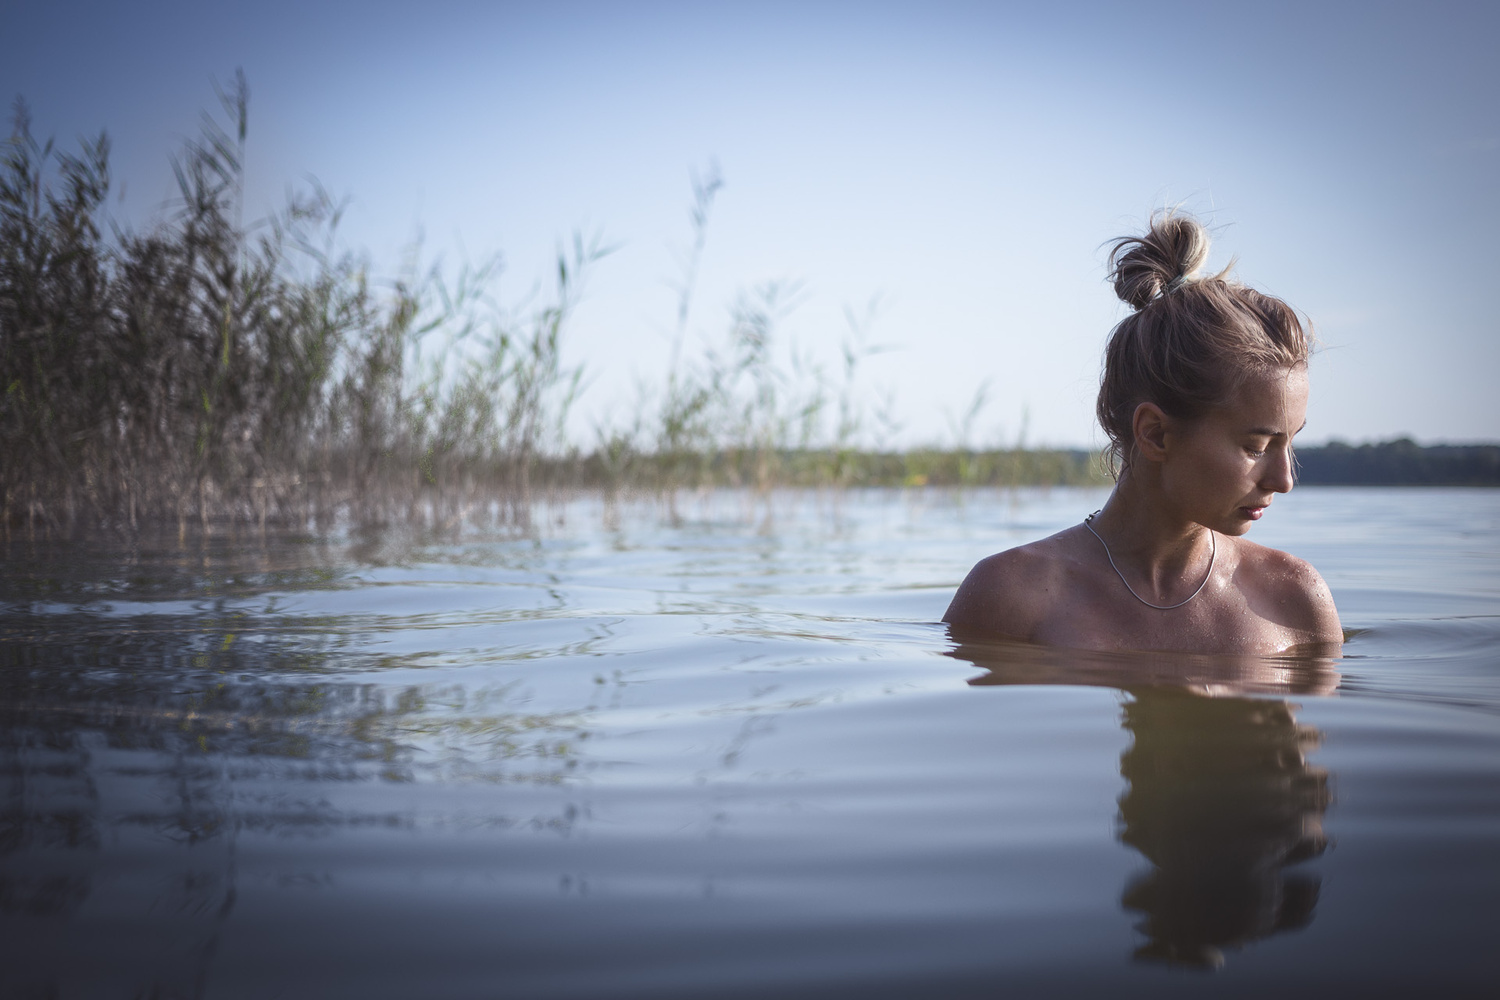 Zofia in the lake by Andy Day